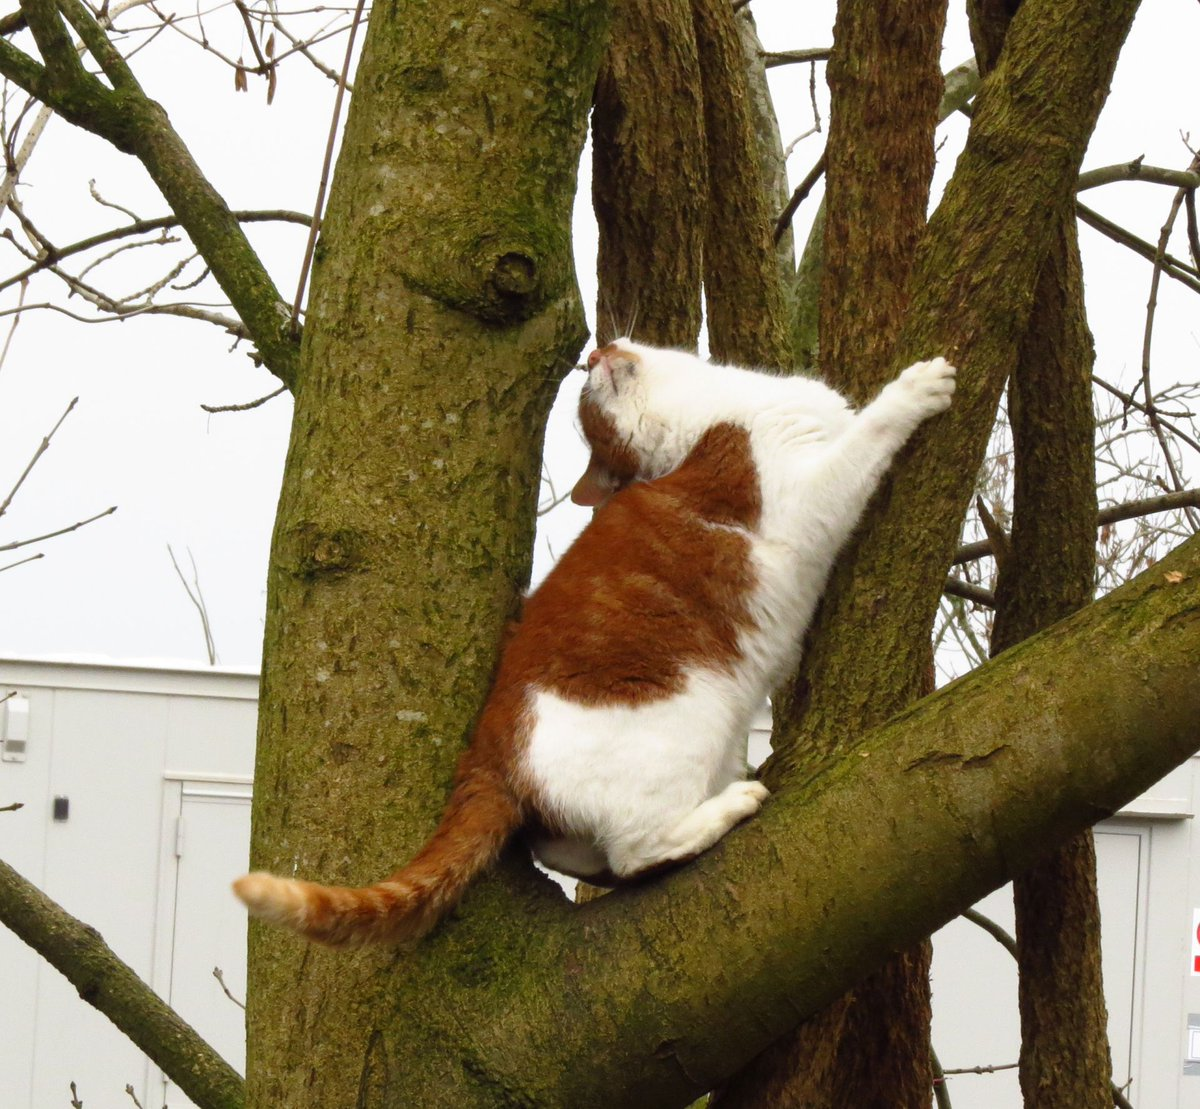 The madness of treeeeeees and squirrels!! #Caturday